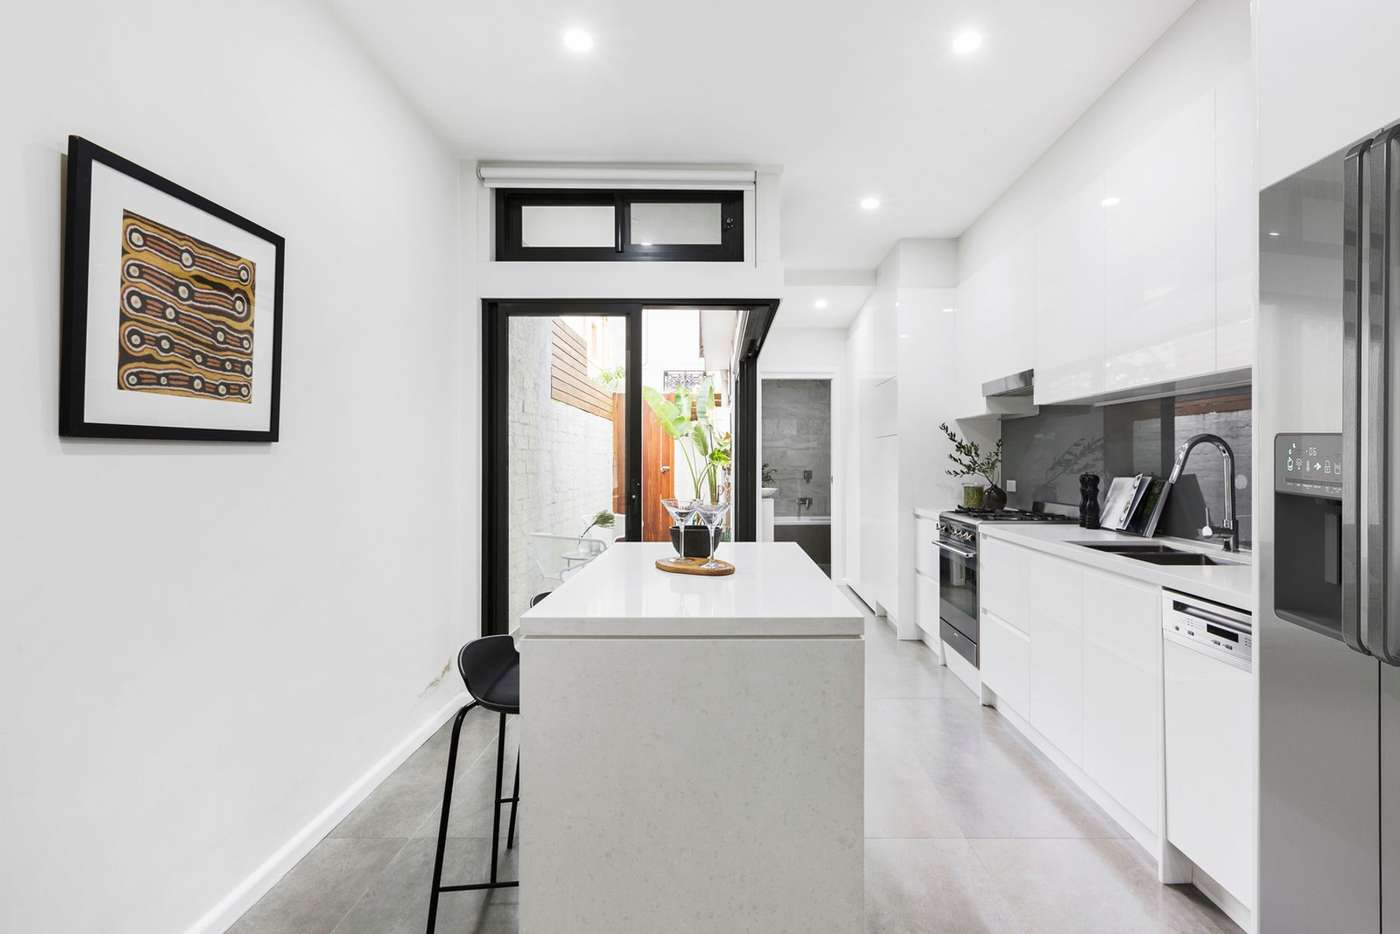 Fifth view of Homely house listing, 9 Iris Street, Paddington NSW 2021